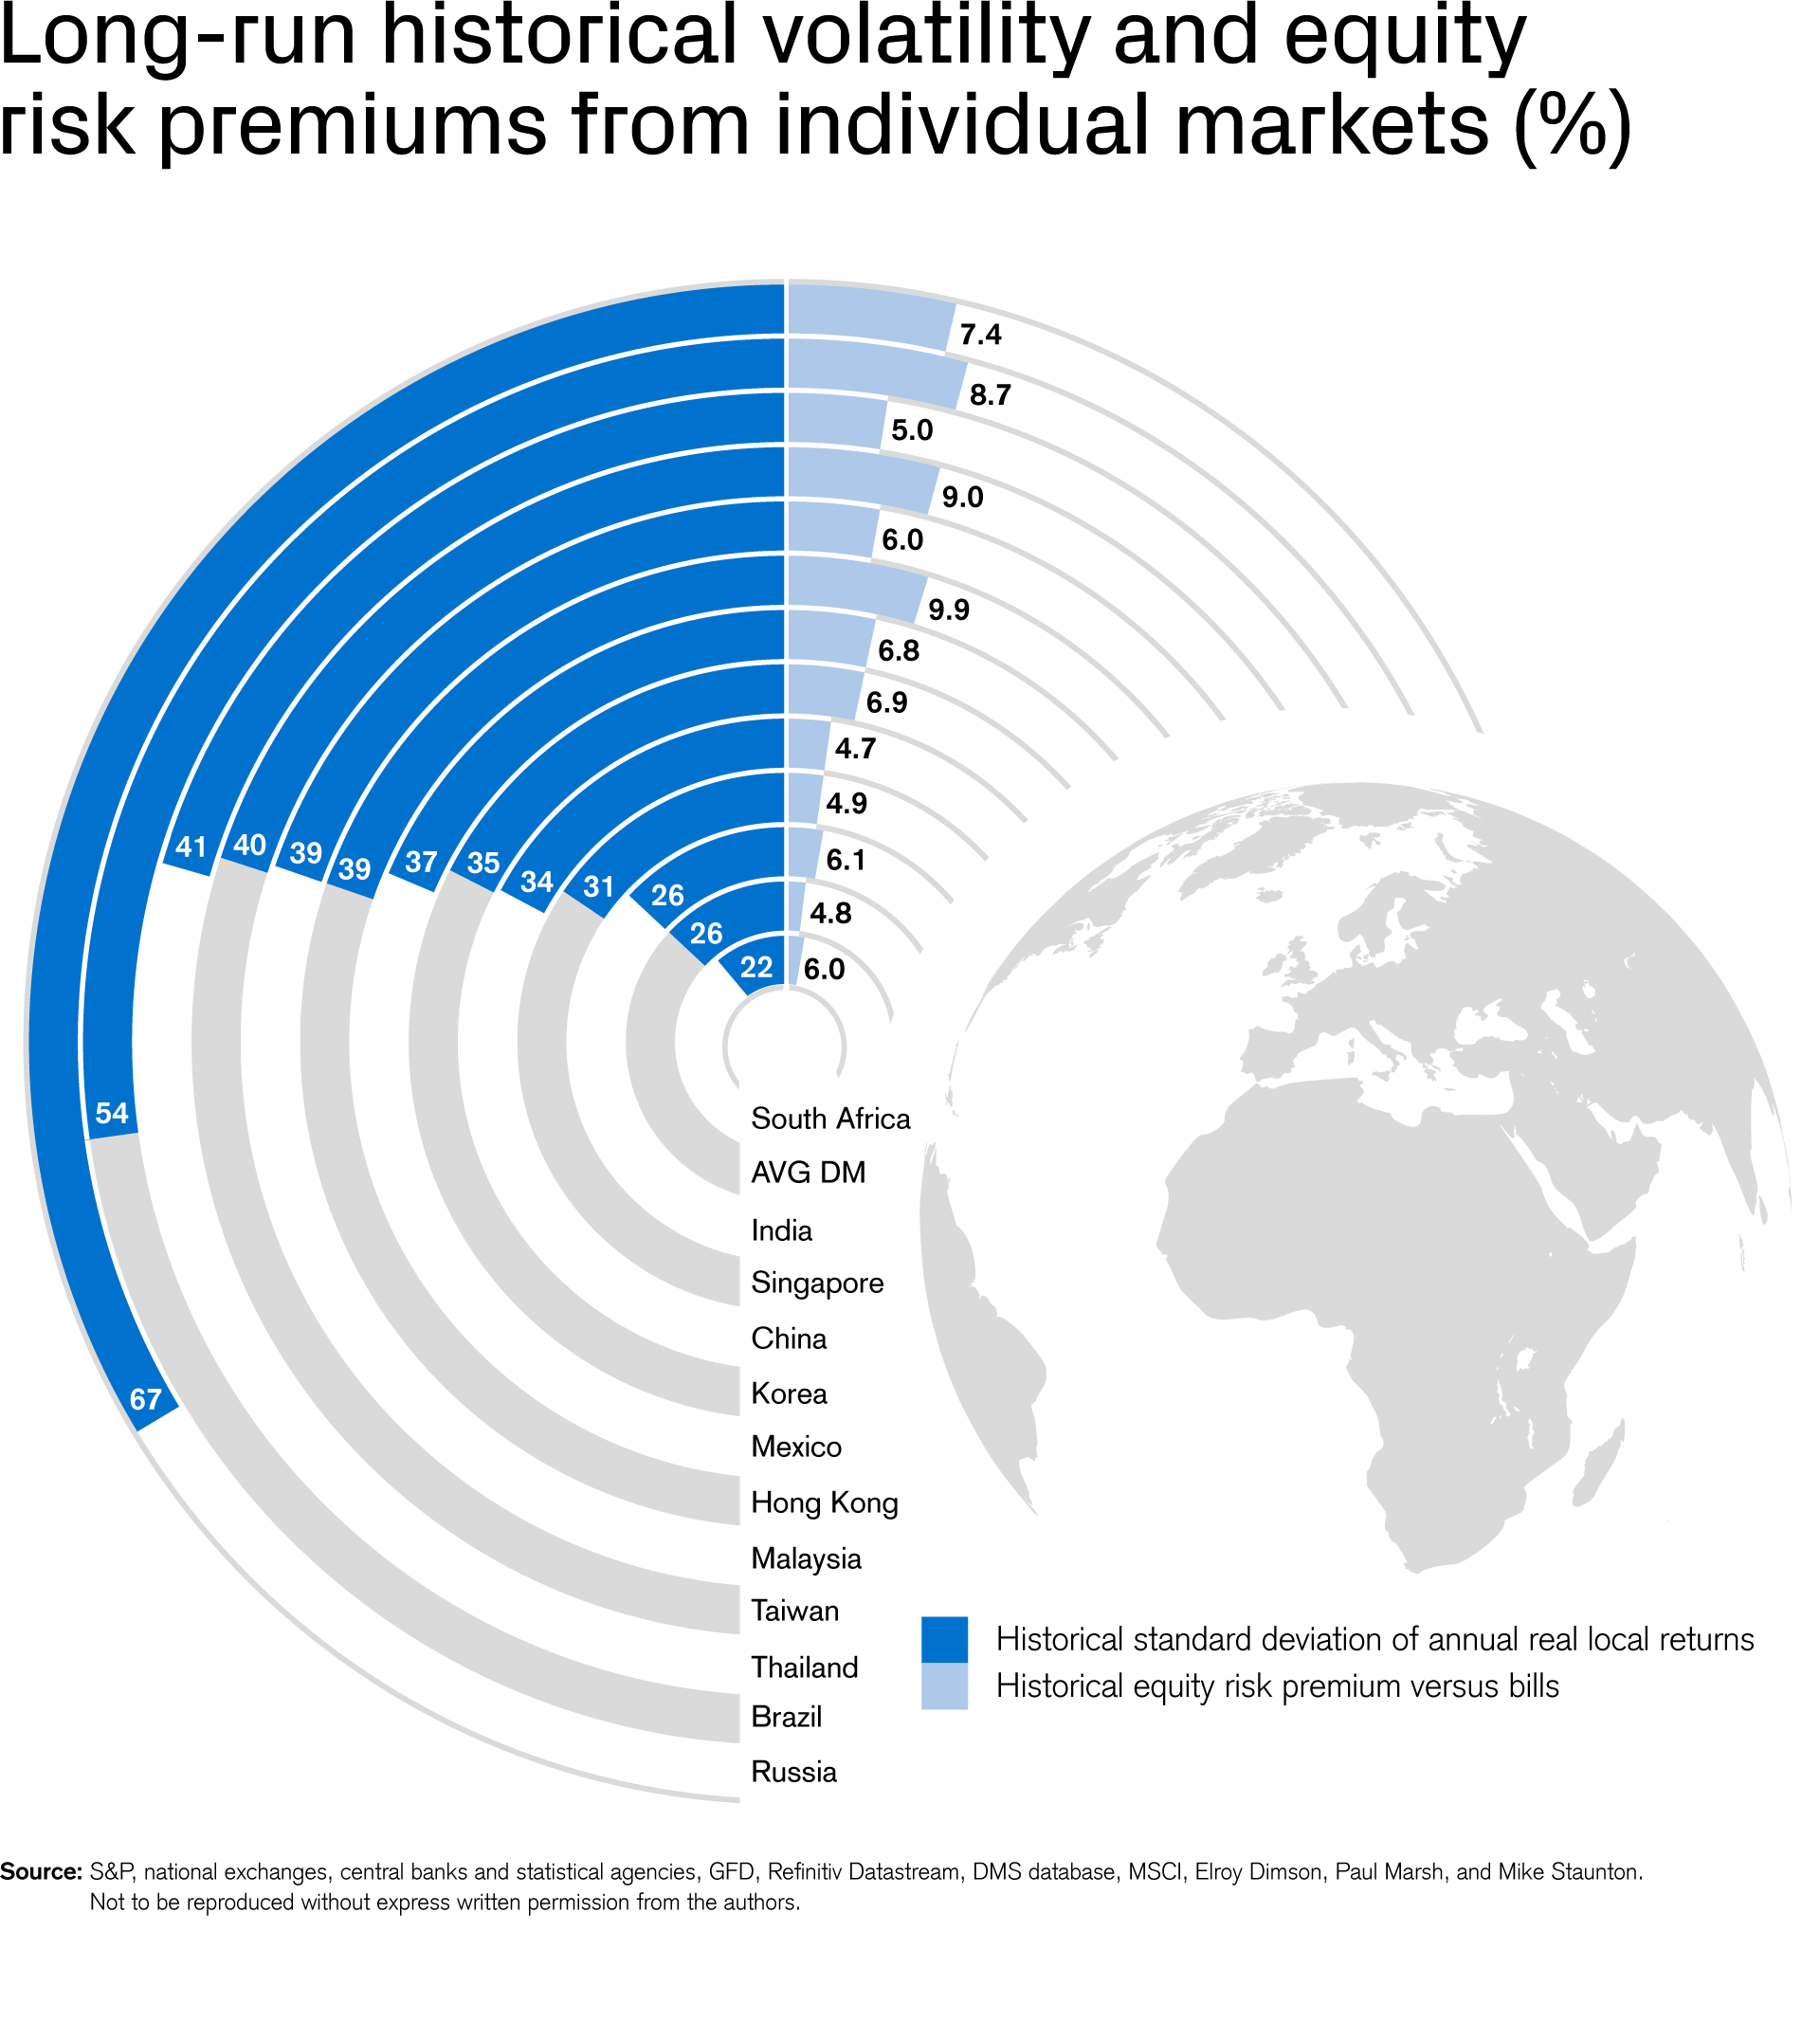 Long-run historical volatility and equity risk premiums from individual markets (%)